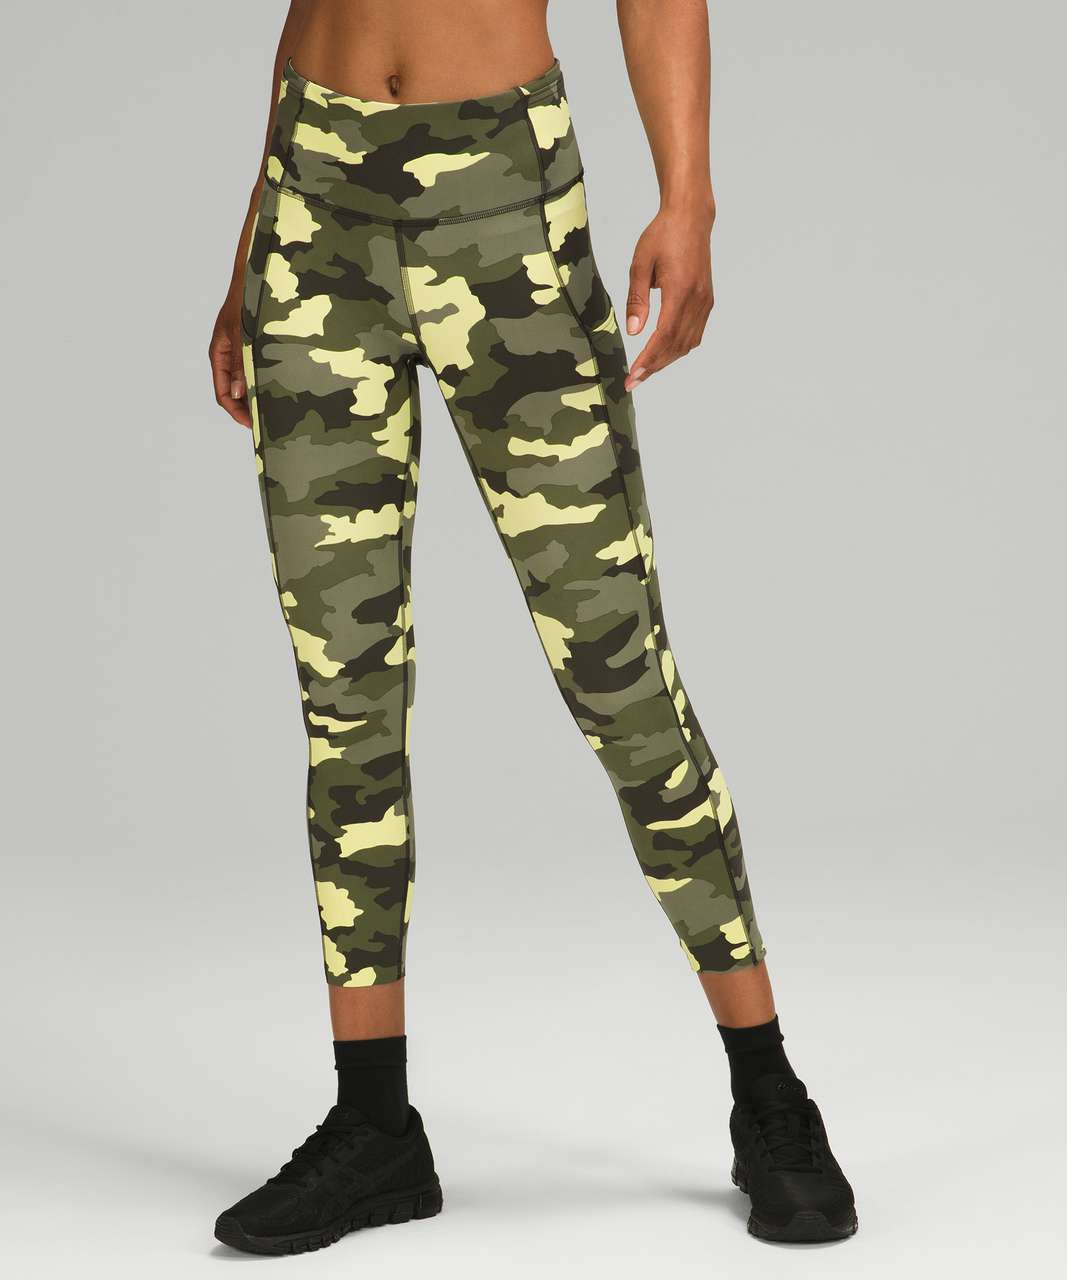 """Lululemon Fast and Free High Rise Crop 23"""" - Heritage 365 Camo Crispin Green Multi"""